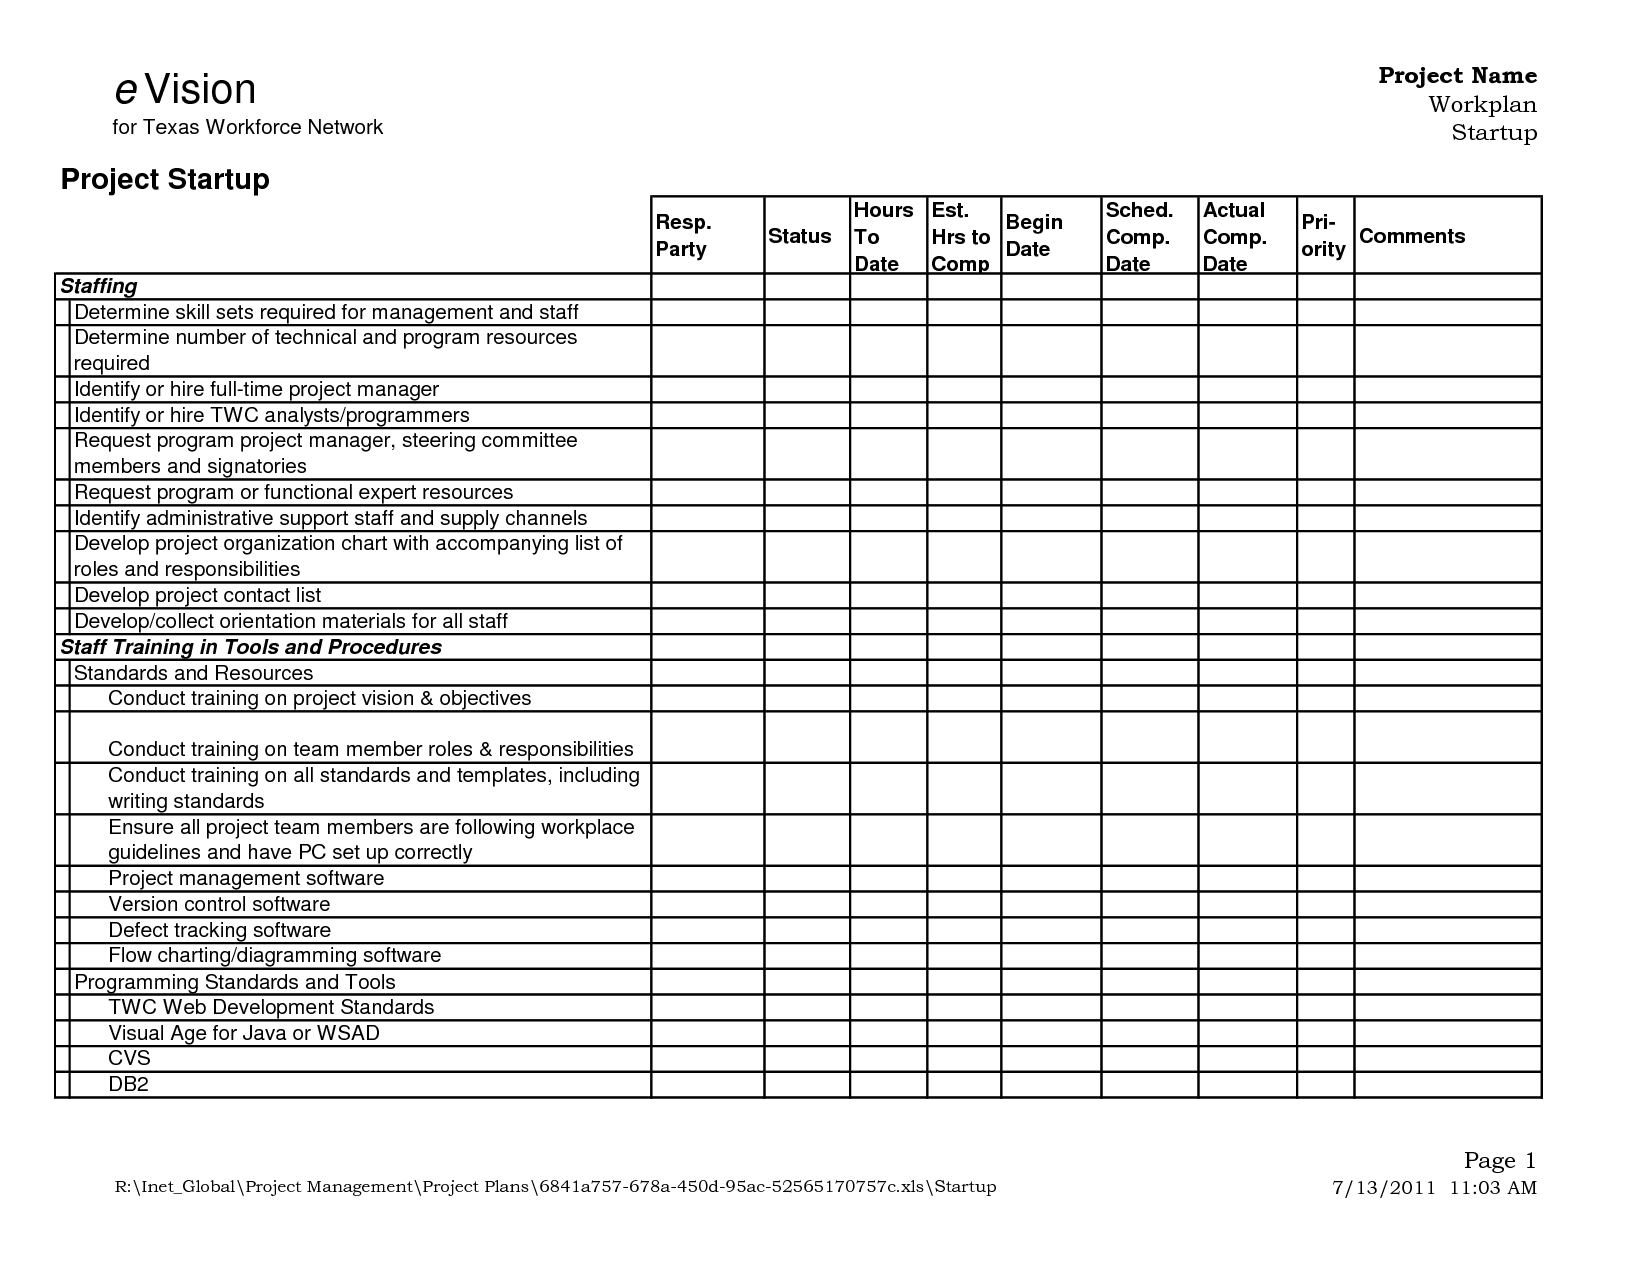 16 Best Images Of Weekly Payment Schedule Worksheet